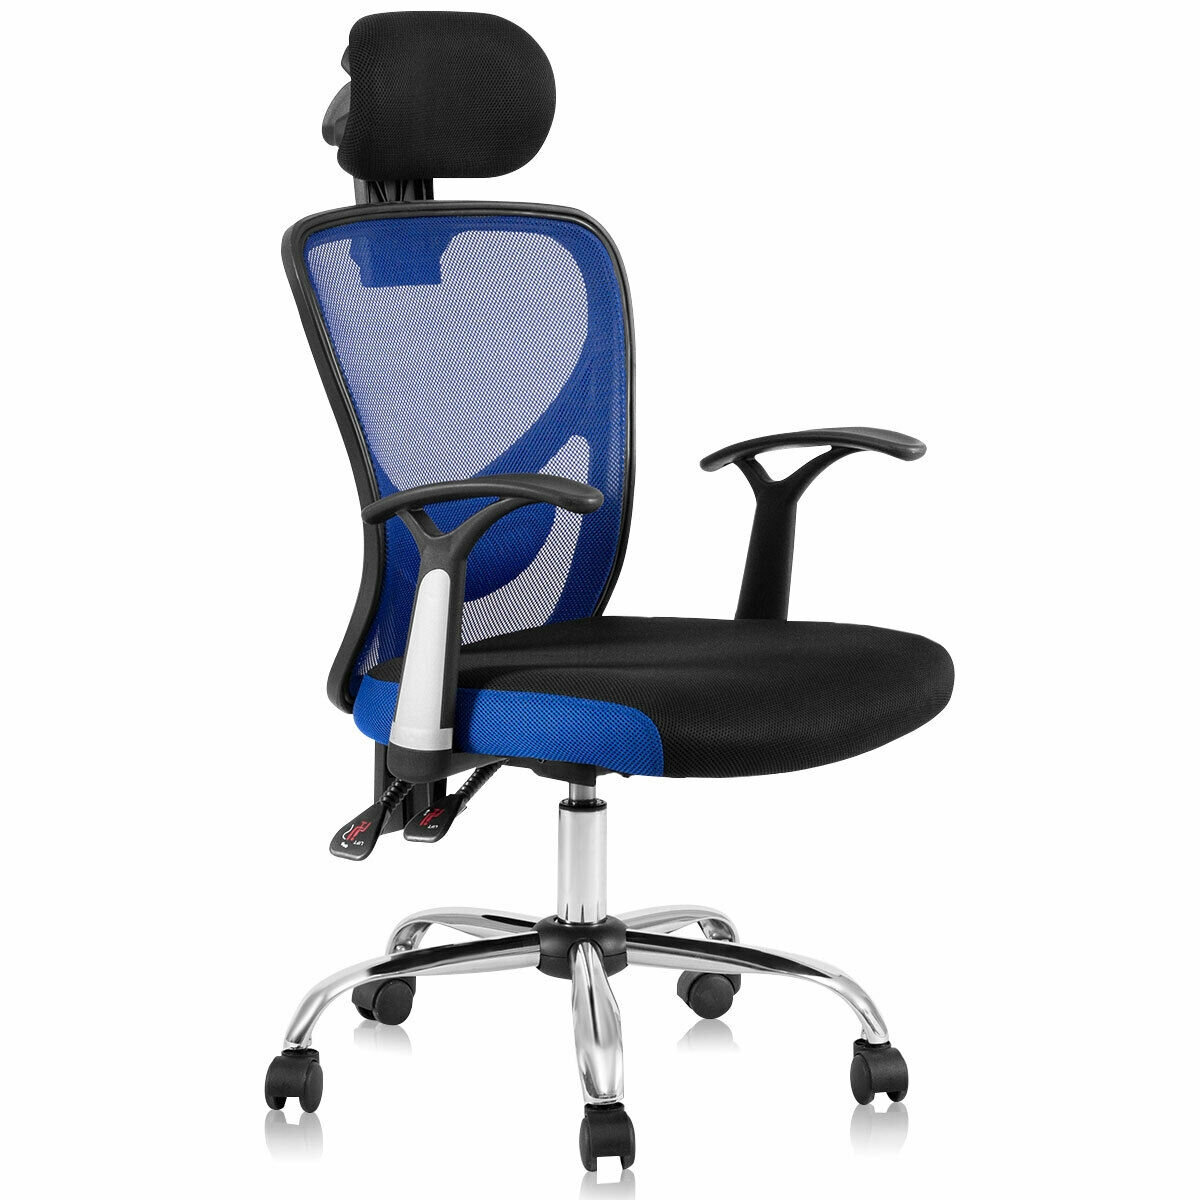 Ergonomic Chair Ergonomic Mesh High Back Office Chair With Headrest